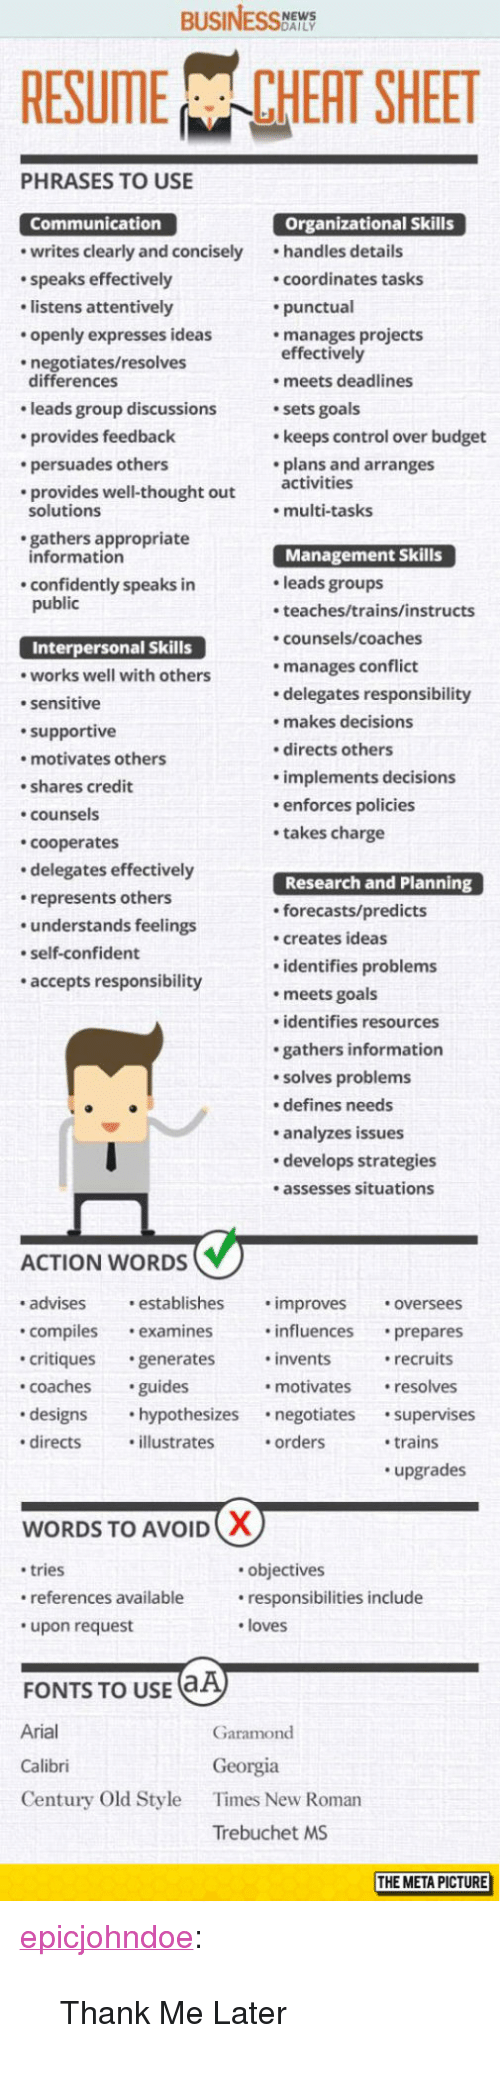 """Goals, Tumblr, and Control: BUSINESS  RESUME CHEAT SHEET  PHRASES TO USE  Organizational Skills  Communication  writes clearly and concisely handles details  speaks effectively  listens attentively  openly expresses ideas  negotiates/resolves  coordinates tasks  punctual  manages projects  effectively  differences  leads group discussions  provides feedback  persuades others  provides well-thought out ctivities  . meets deadlines  sets goals  keeps control over budget  plans and arranges  solutions  multi-tasks  gathers appropriate  Management Skills  leads groups  teaches/trains/instructs  counsels/coaches  manages conflict  delegates responsibility  makes decisions  directs others  implements decisions  enforces policies  takes charge  information  confidently speaks in  public  Interpersonal Skills  works well with others  sensitive  supportive  motivates others  shares credit  counsels  cooperates  delegates effectively  represents others  understands feelings  self-confident  accepts responsibility  Research and Planning  forecasts/predicts  creates ideas  identifies problems  meets goals  identifies resources  gathers information  solves problems  defines needs  analyzes issues  develops strategies  .assesses situations  ACTION WORDS  advises establishes .improves oversees  compilesexamines influences prepares  critiques generates invents  coachesguides  designs hypothesizes negotiates supervises  directsillustrates .orders  recruits  resolves  motivates  trains  upgrades  WORDS TO AVOID  tries  references available  upon request  objectives  responsibilities include  loves  FONTS TO USE  Arial  Calibri  Century Old Style  Garamond  Georgia  Times New Roman  Trebuchet MS  THE META PICTURE <p><a href=""""https://epicjohndoe.tumblr.com/post/172872405684/thank-me-later"""" class=""""tumblr_blog"""">epicjohndoe</a>:</p>  <blockquote><p>Thank Me Later</p></blockquote>"""